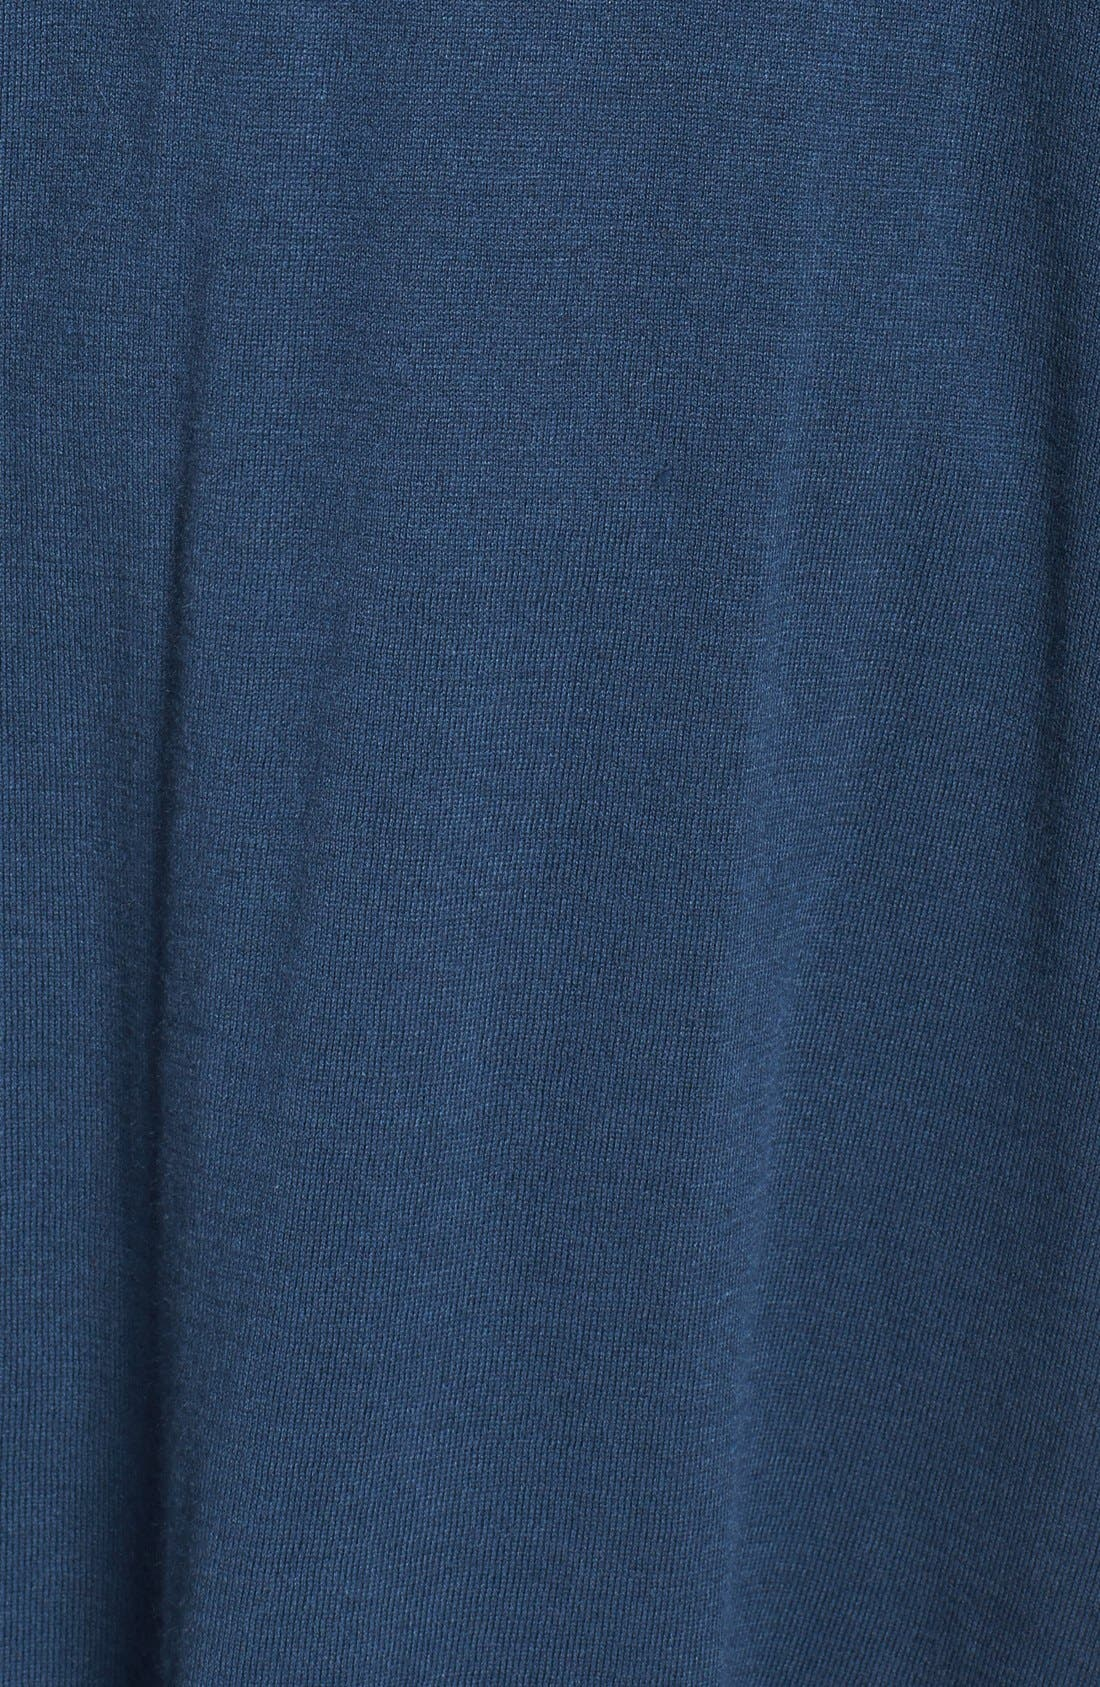 Cowl Neck Tunic Sweater,                             Alternate thumbnail 41, color,